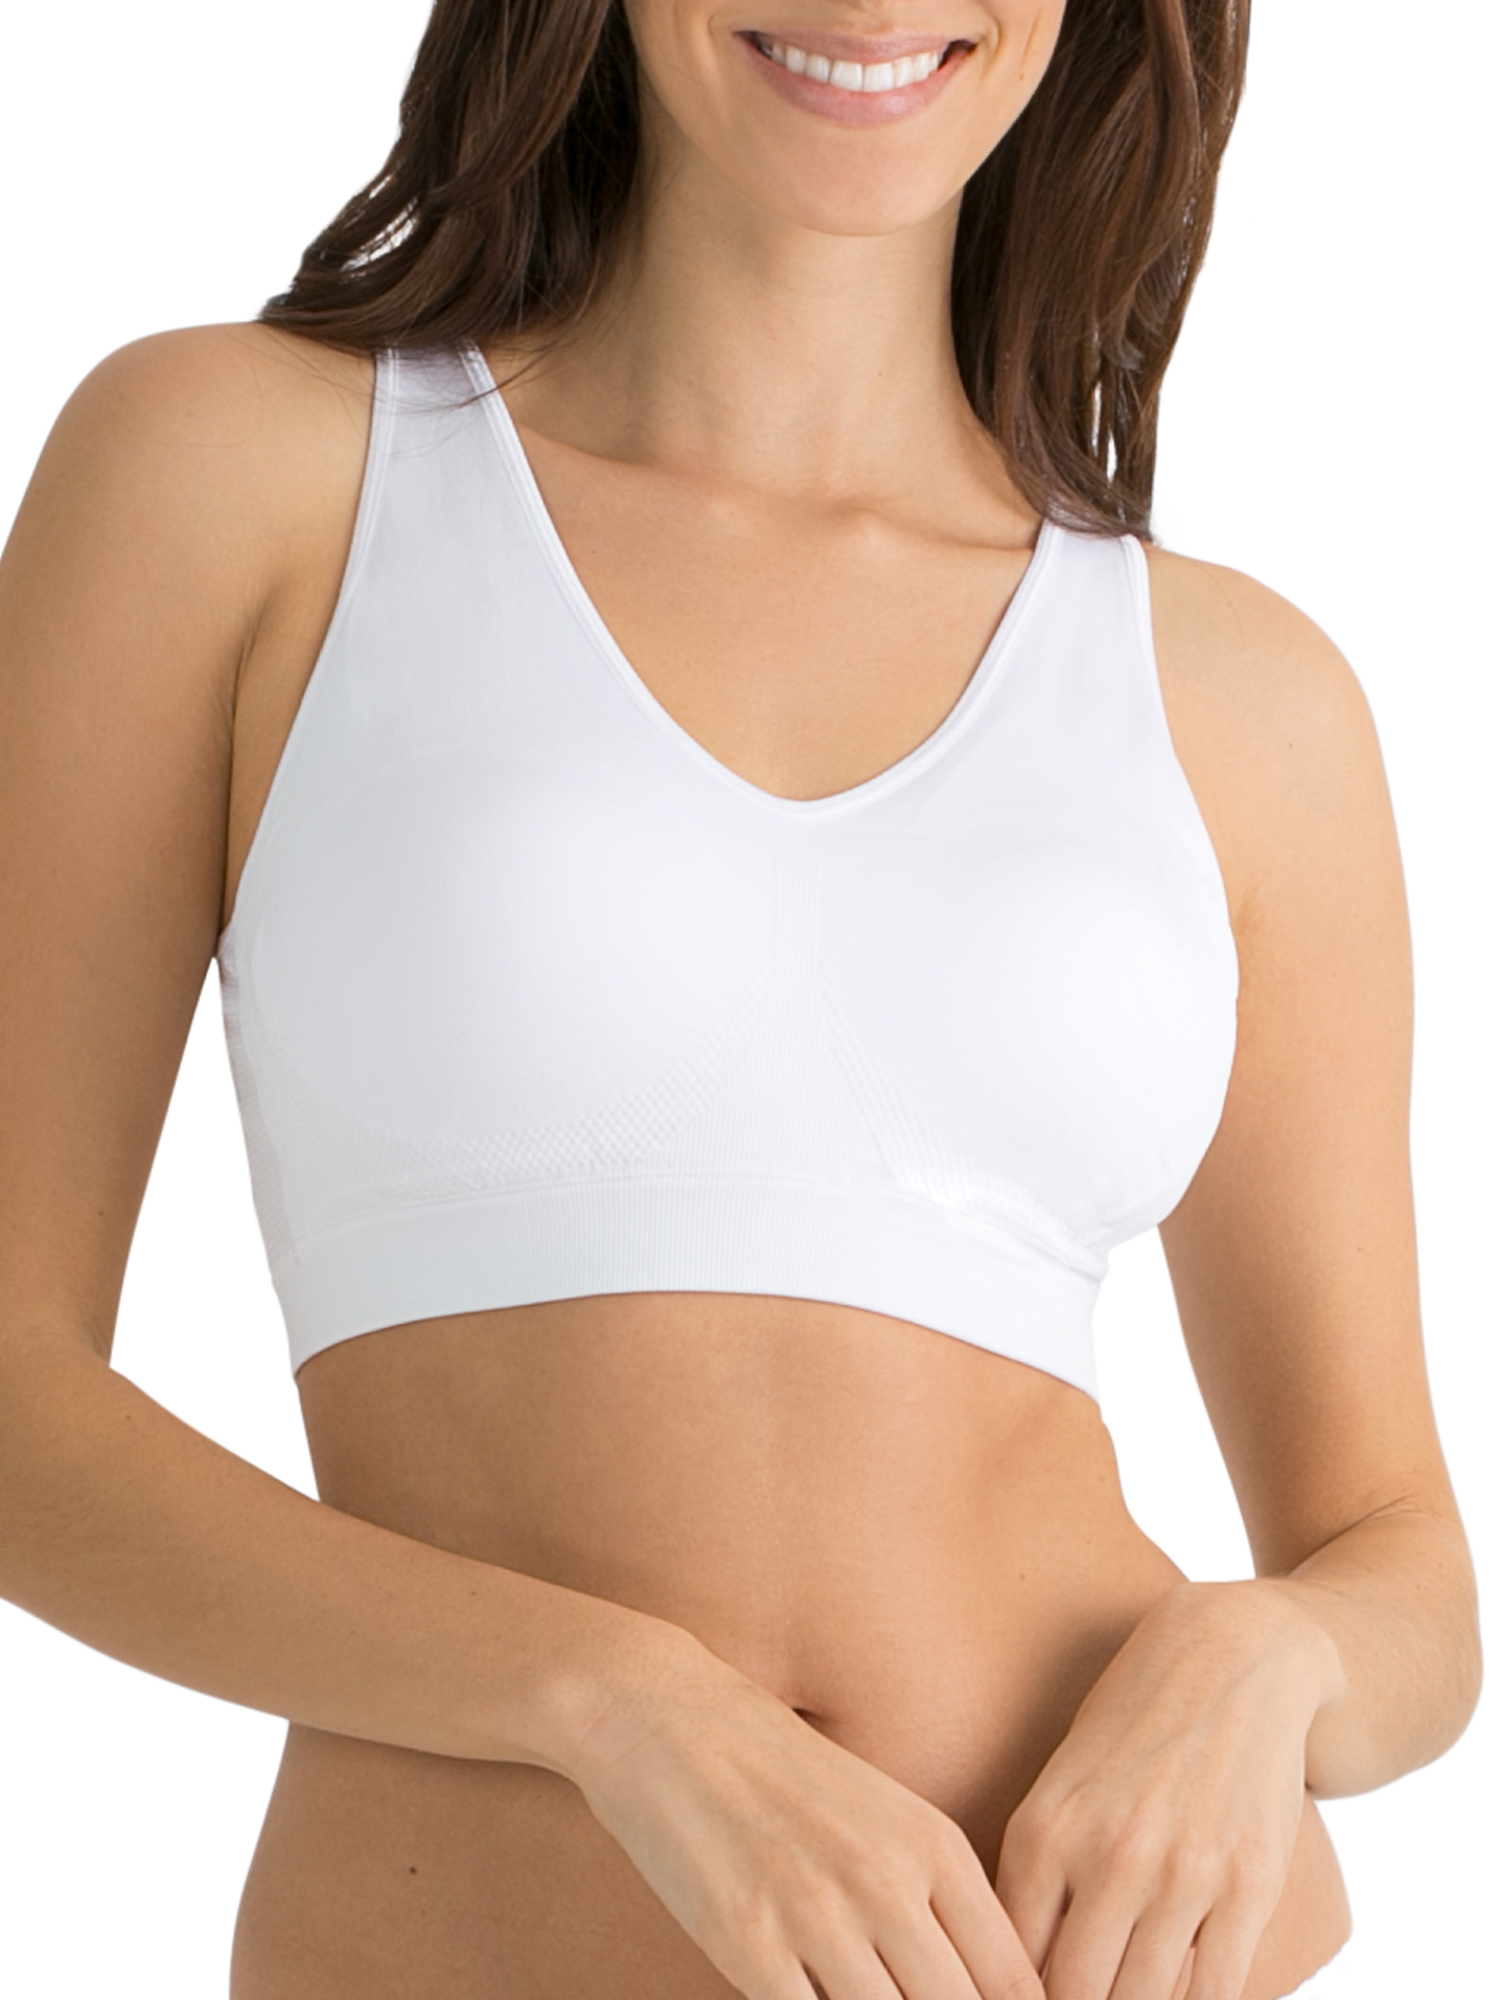 Fruit of the Loom Womens Tank Style Built-up Sports Bra FT696